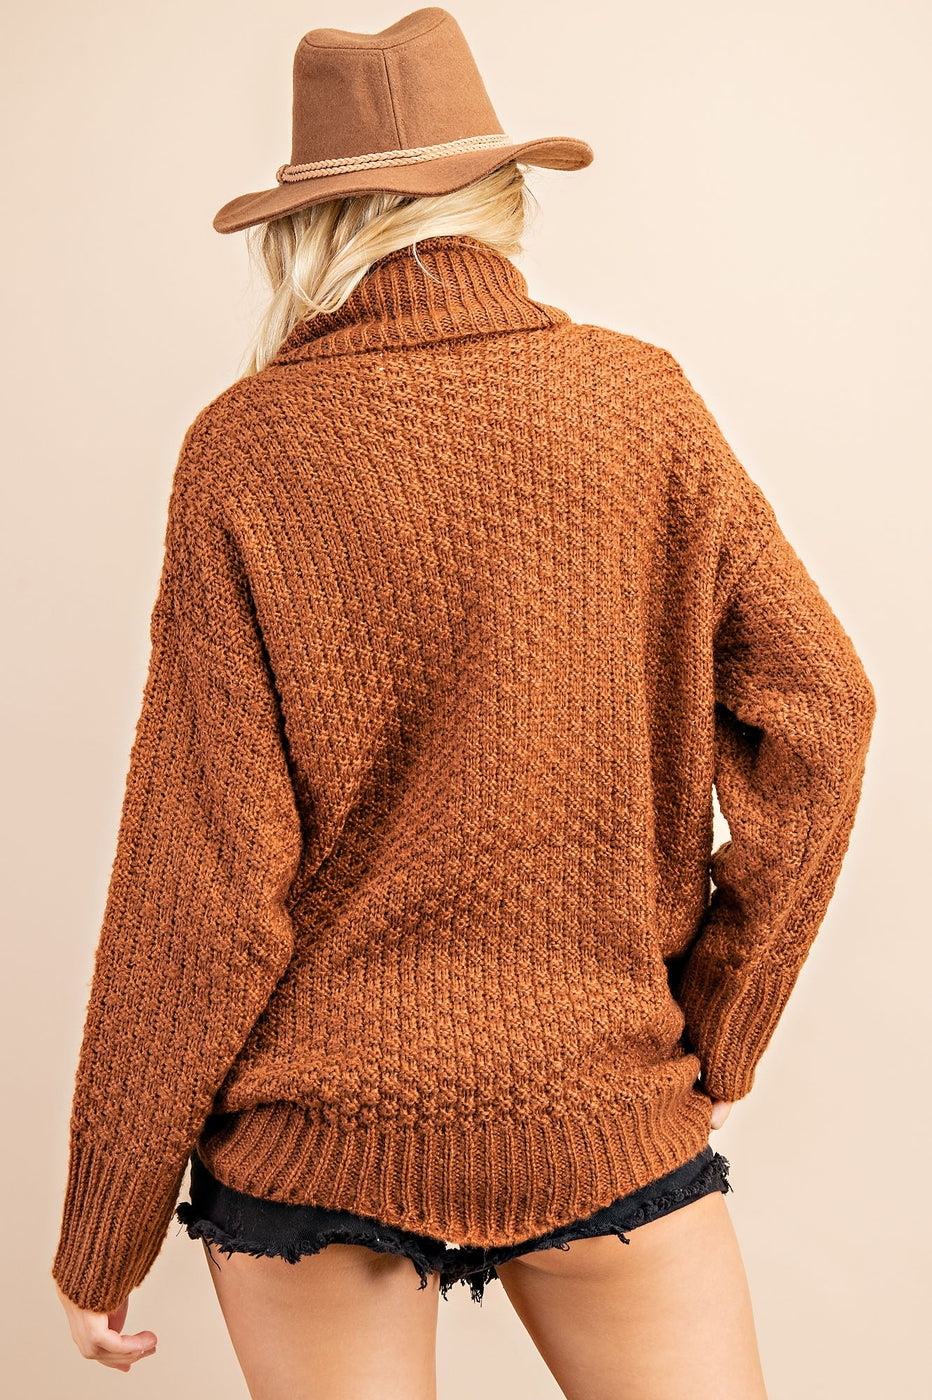 The Poppy Sweater